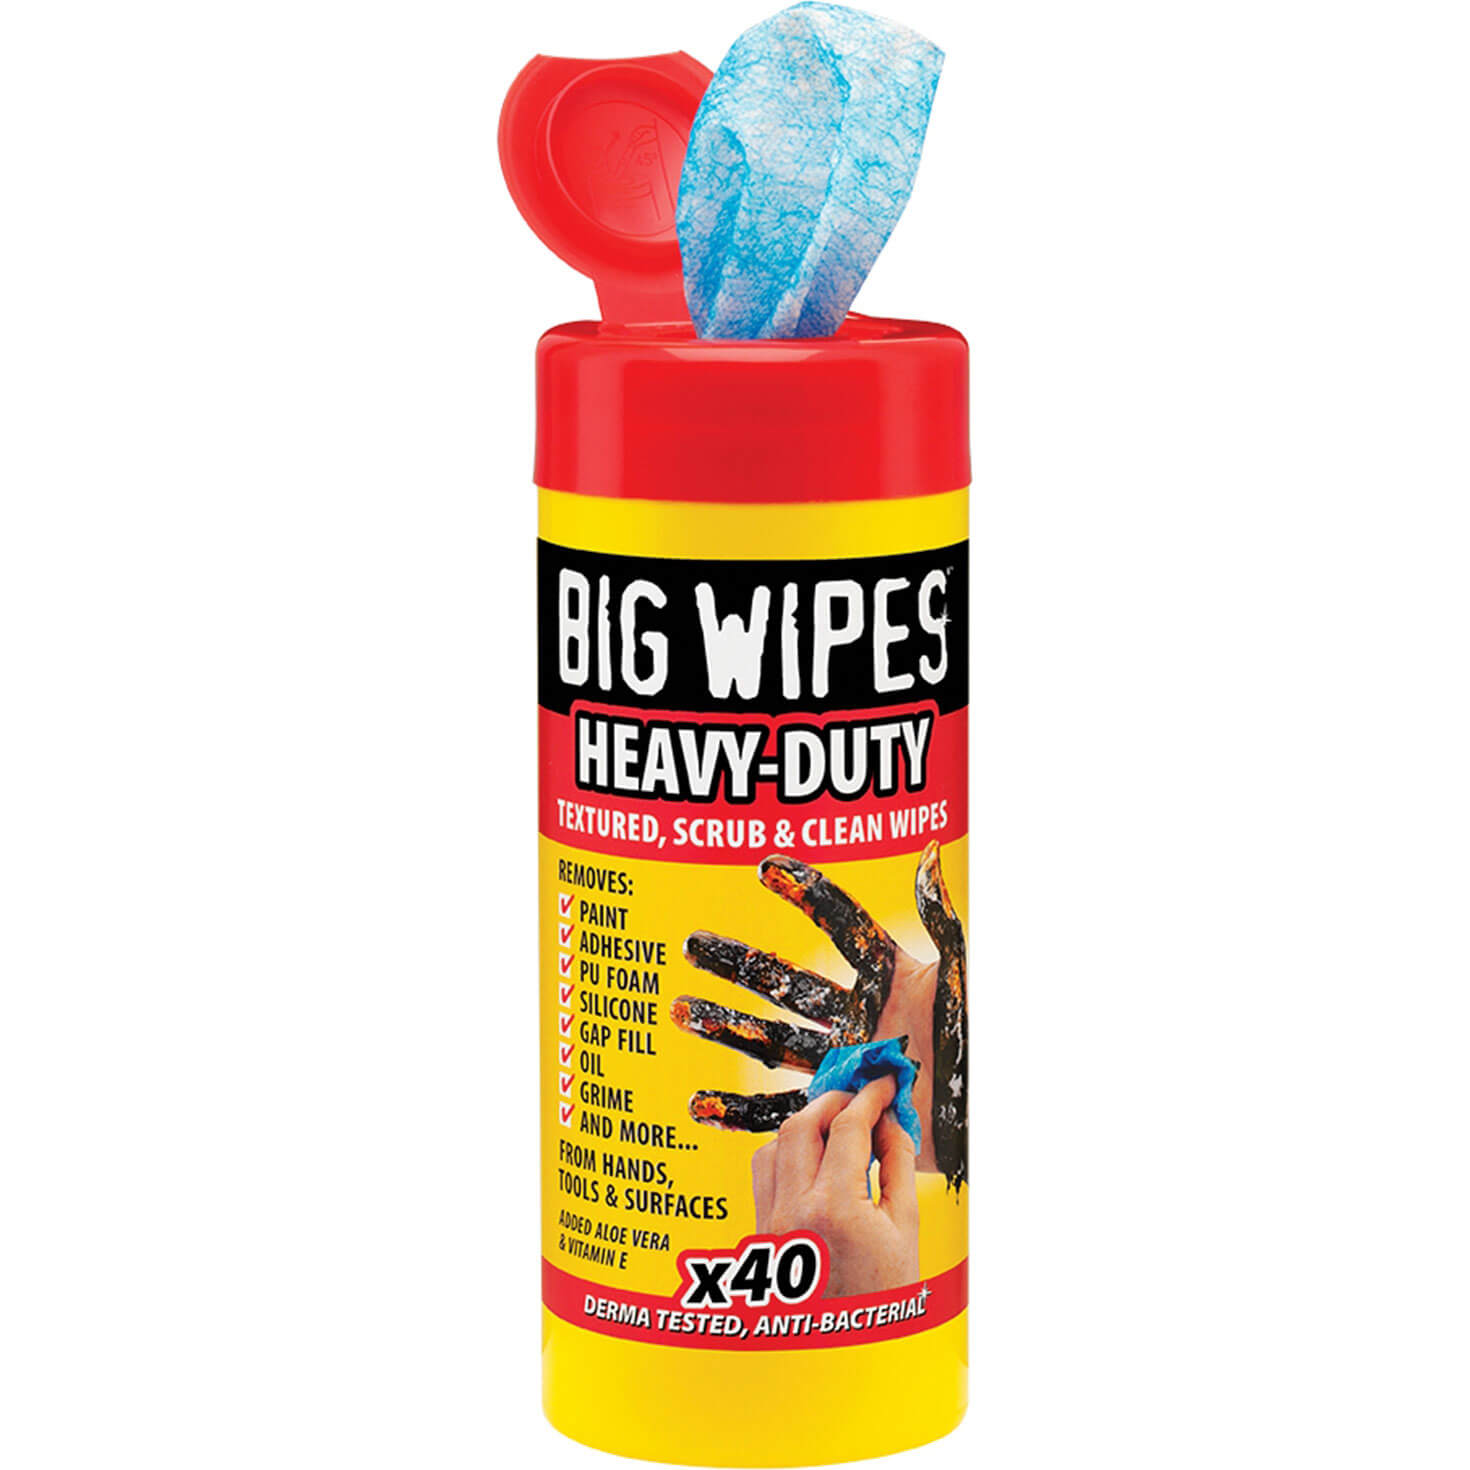 Big Wipes Industrial Plus Cleaning Wipes Tub of 40 Wipes